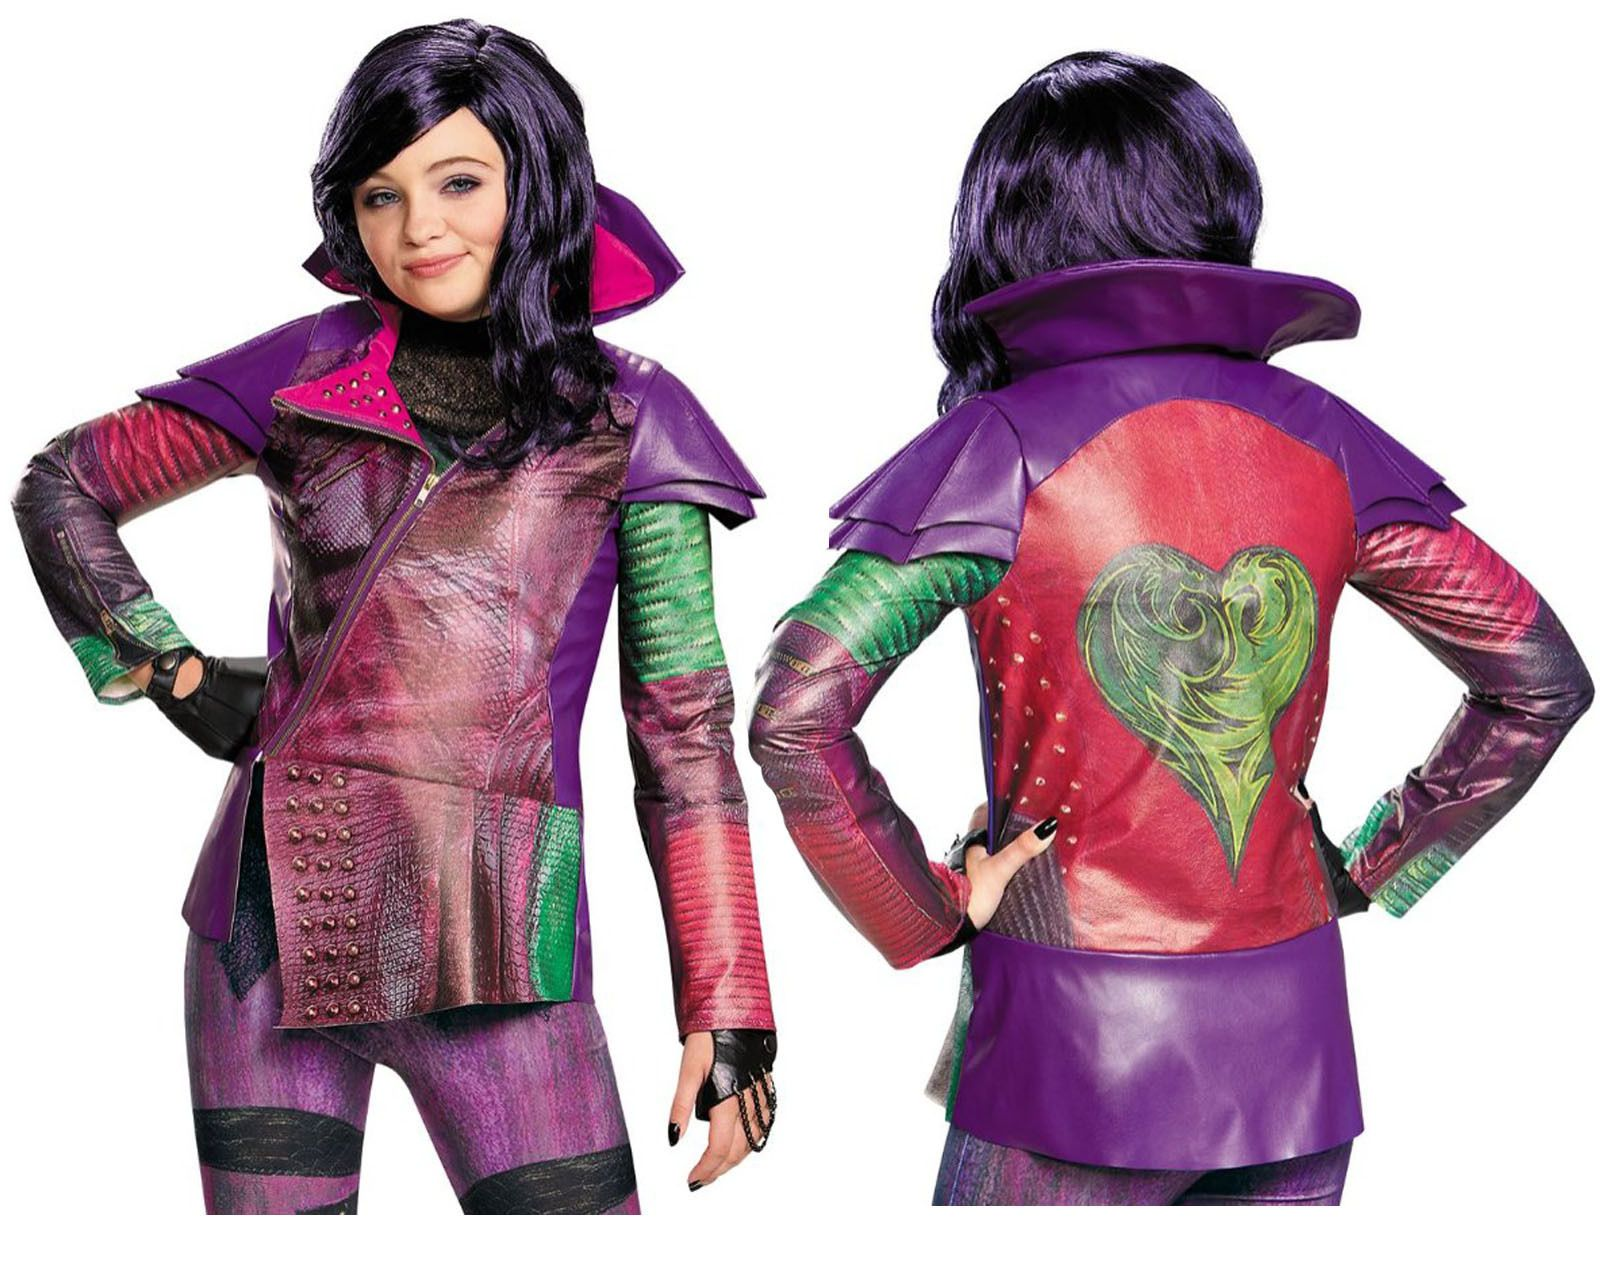 Details about NWT Disney Descendants MAL Halloween Costume JACKET ...